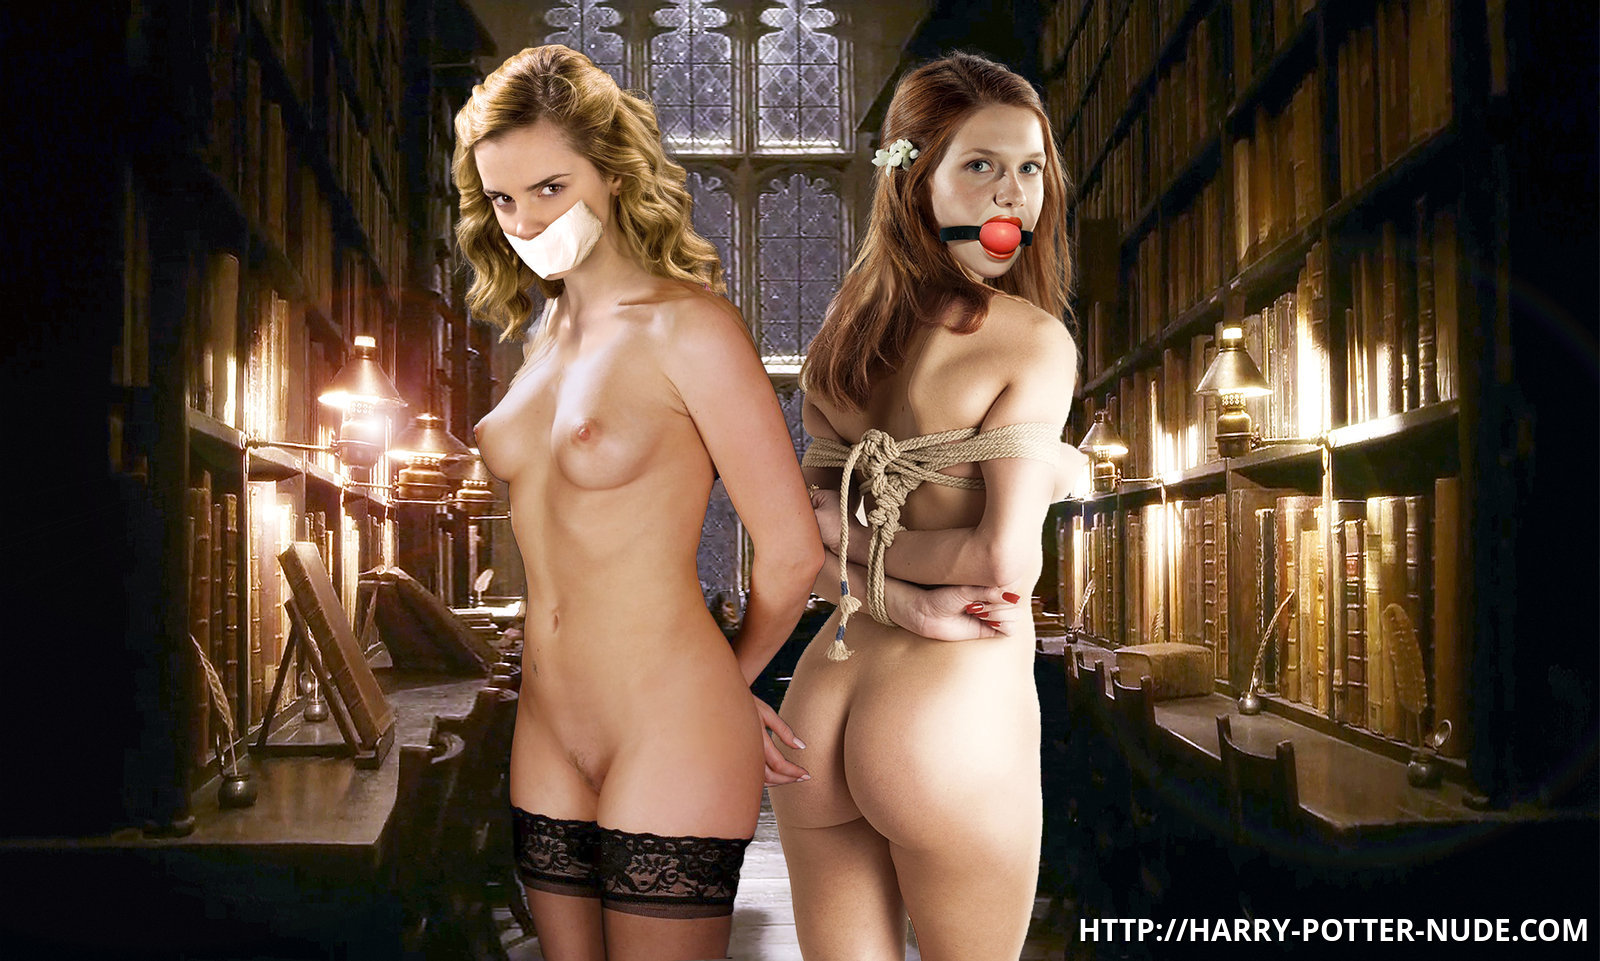 Sexy dools Ginny Weasley and Hermione are both bare and strapped... what kind of kinky magic is going to happen with them next?